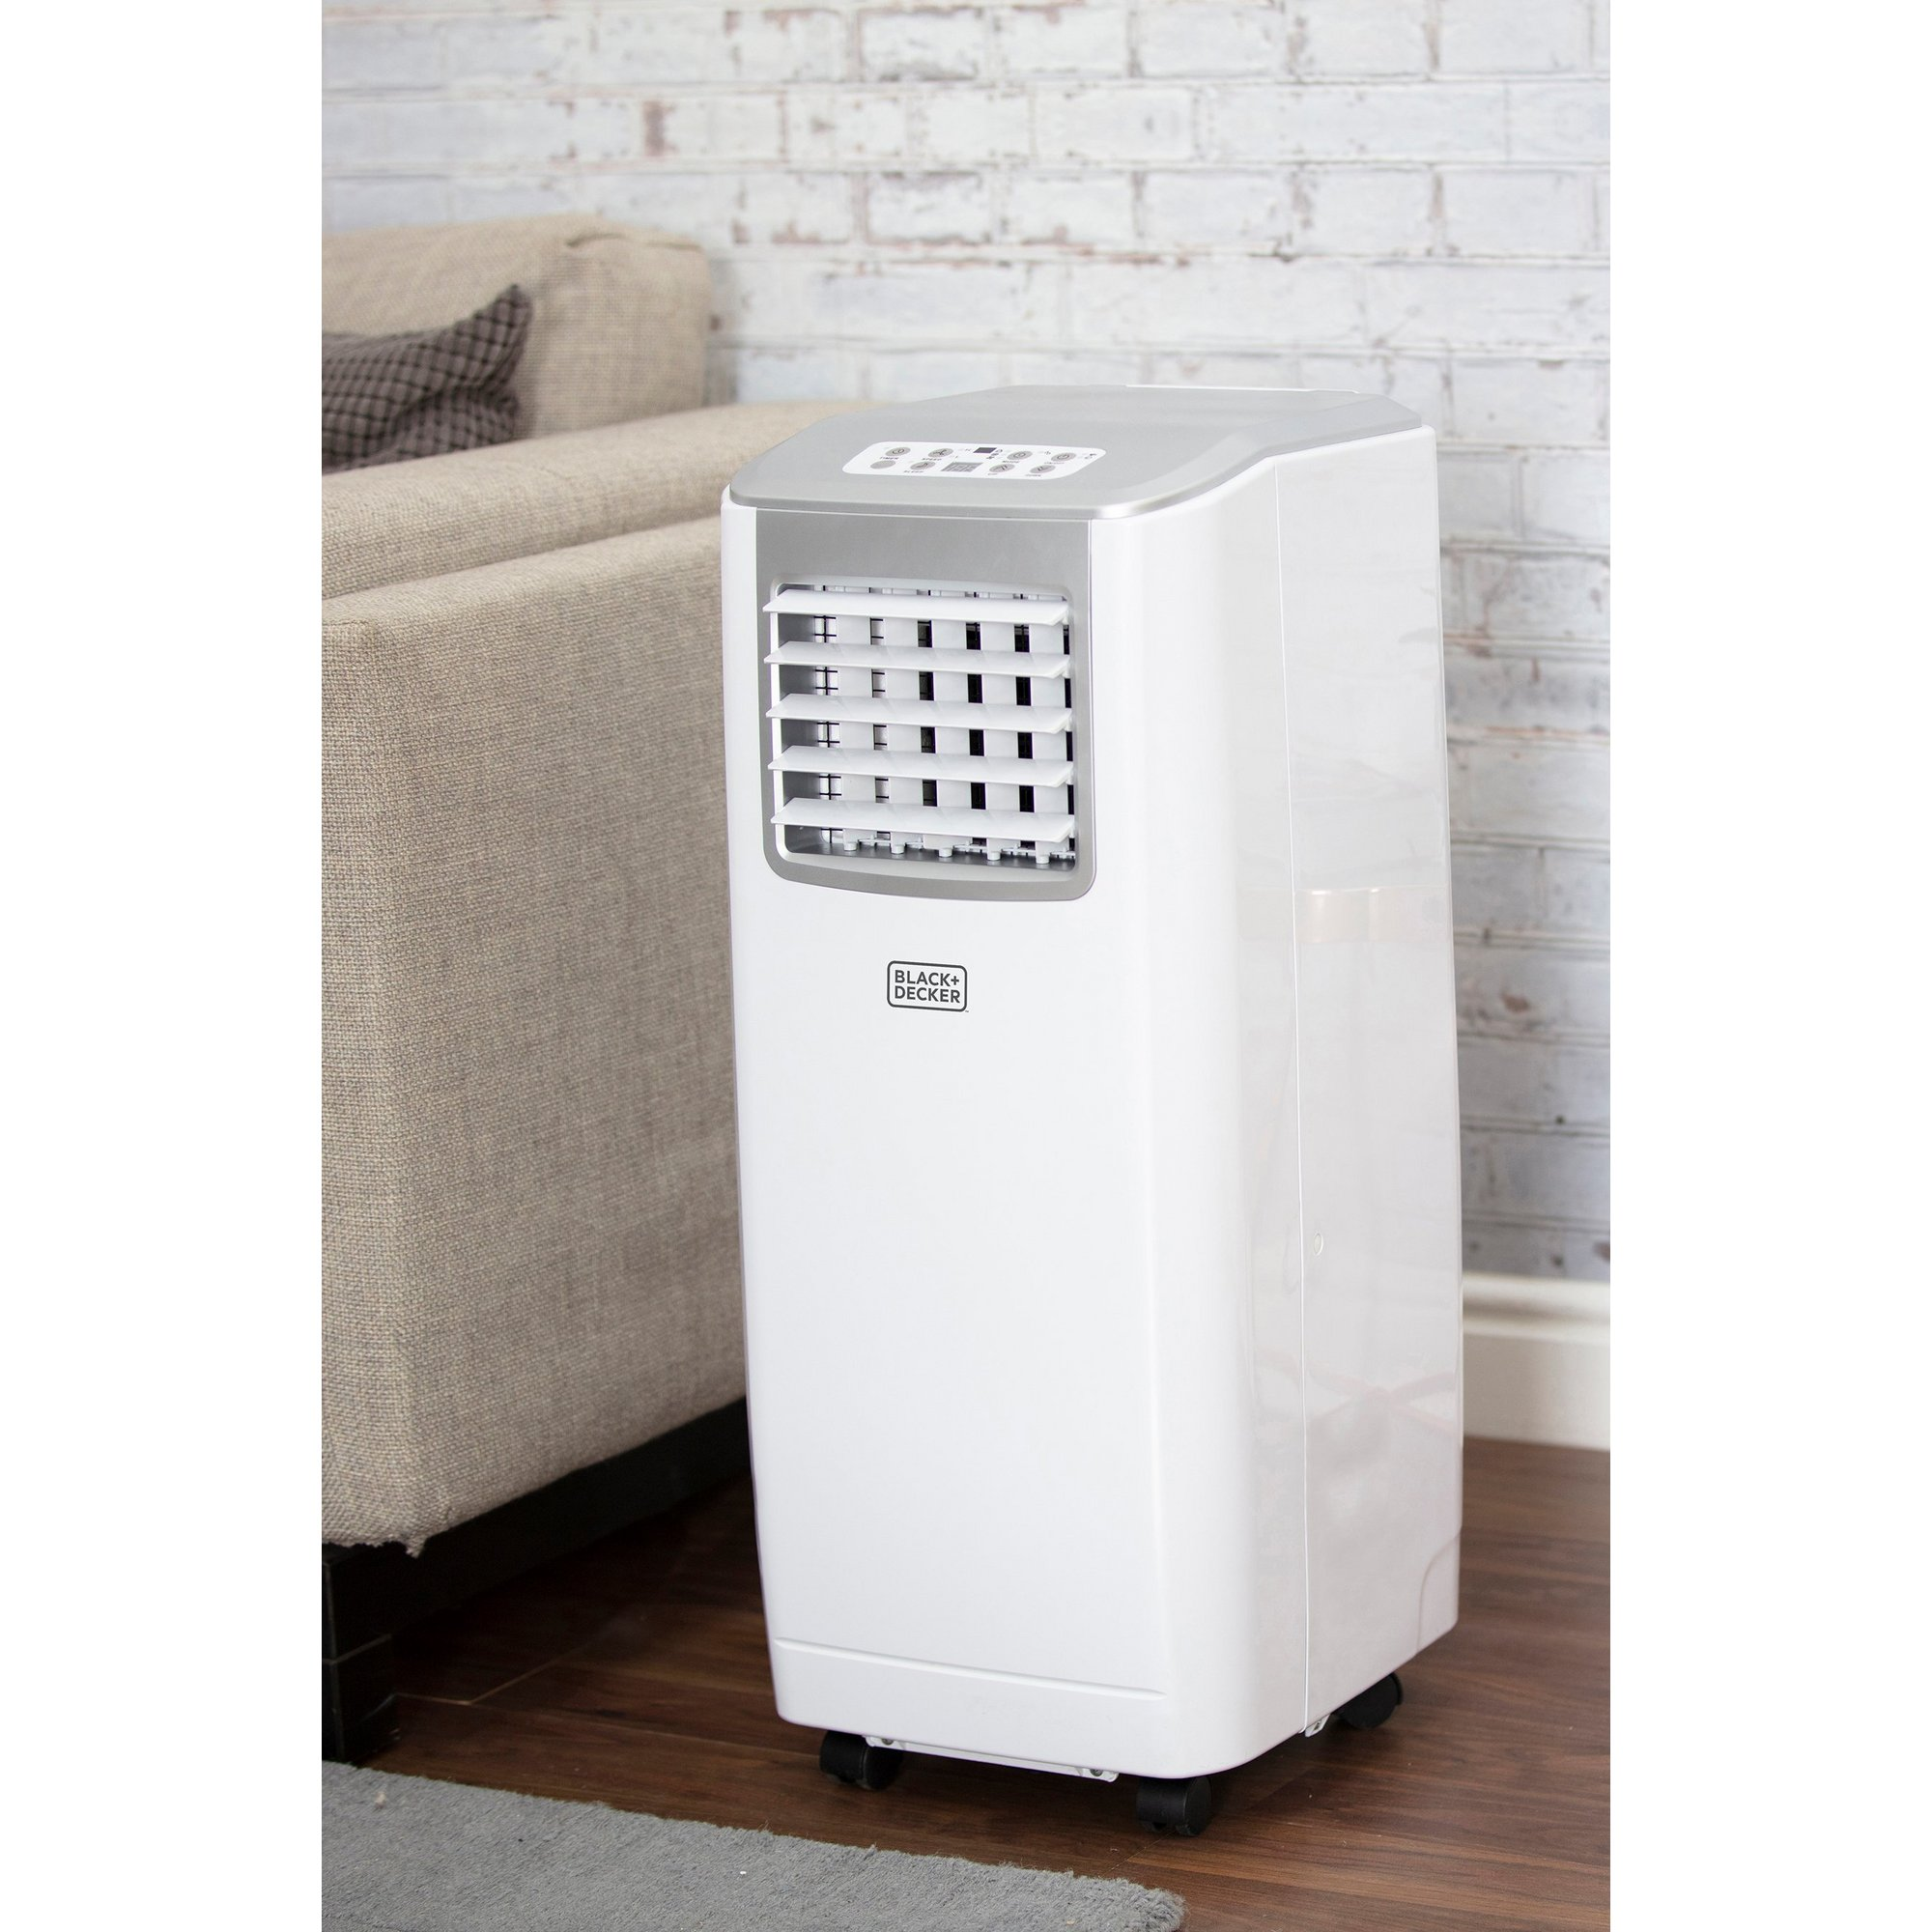 Image of Black and Decker Portable 7000BTU Air Conditioning Unit